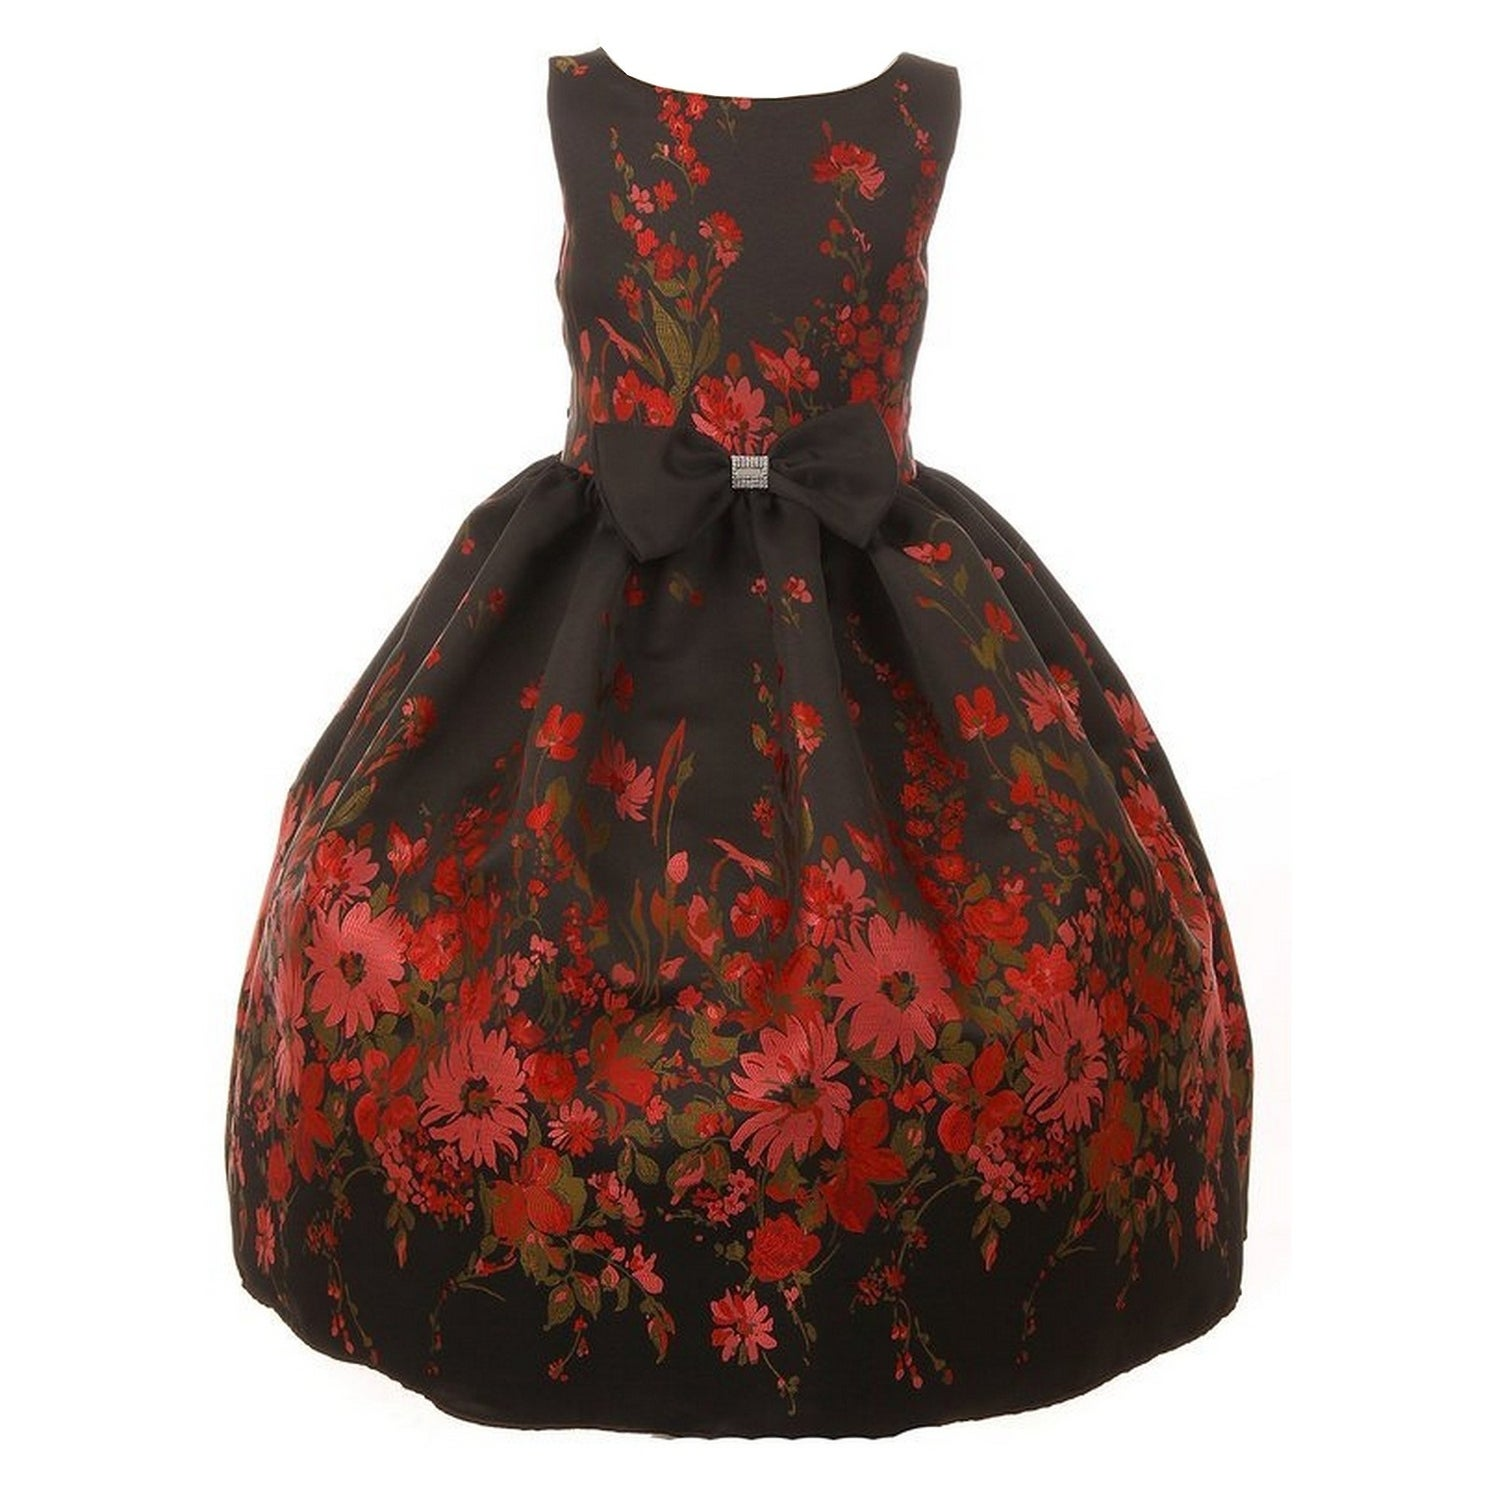 7e52eed50 Shop Little Girls Black Red Flower Embroidery Jacquard Bow Christmas ...